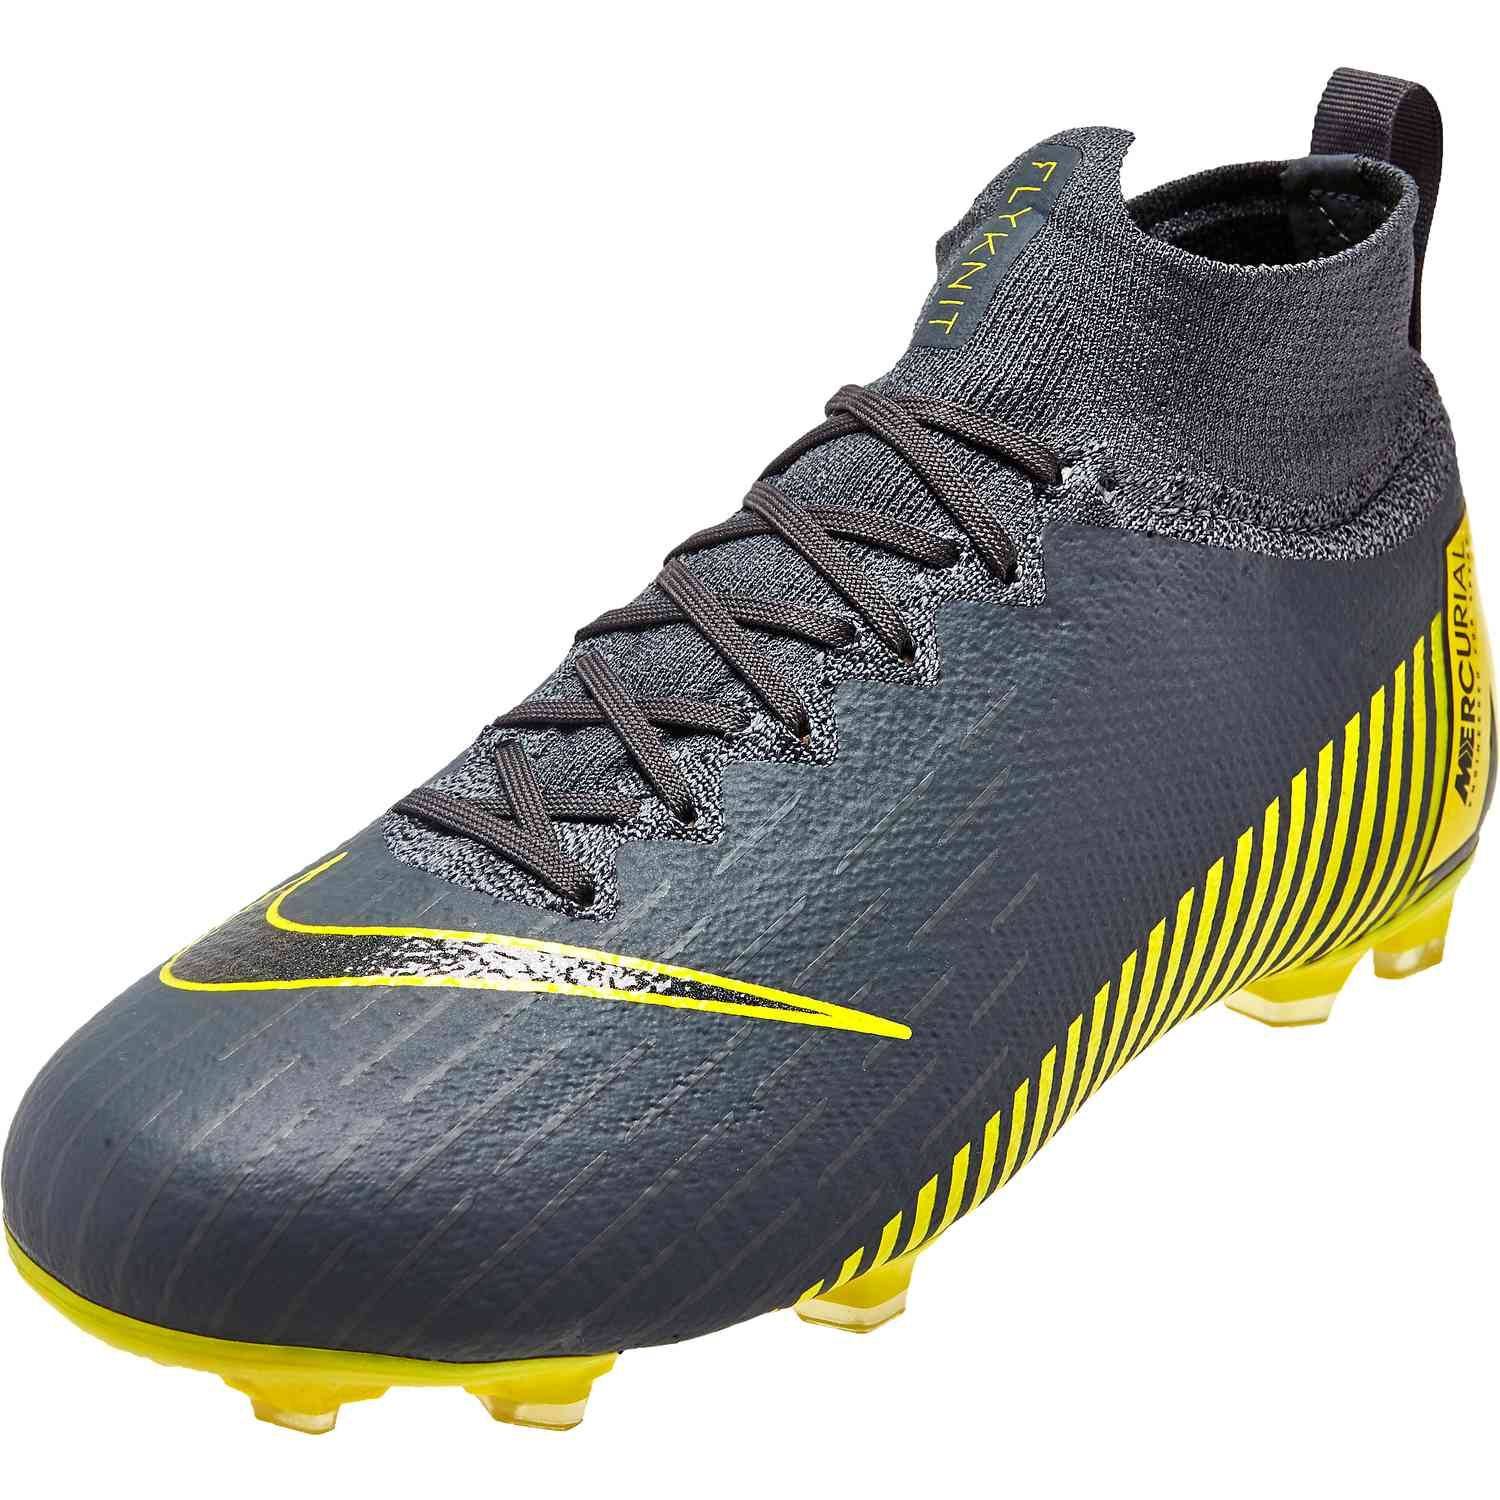 Kids Nike Mercurial Superfly 6 Elite Fg Game Over Soccerpro Superfly Football Boots Wrap Boots